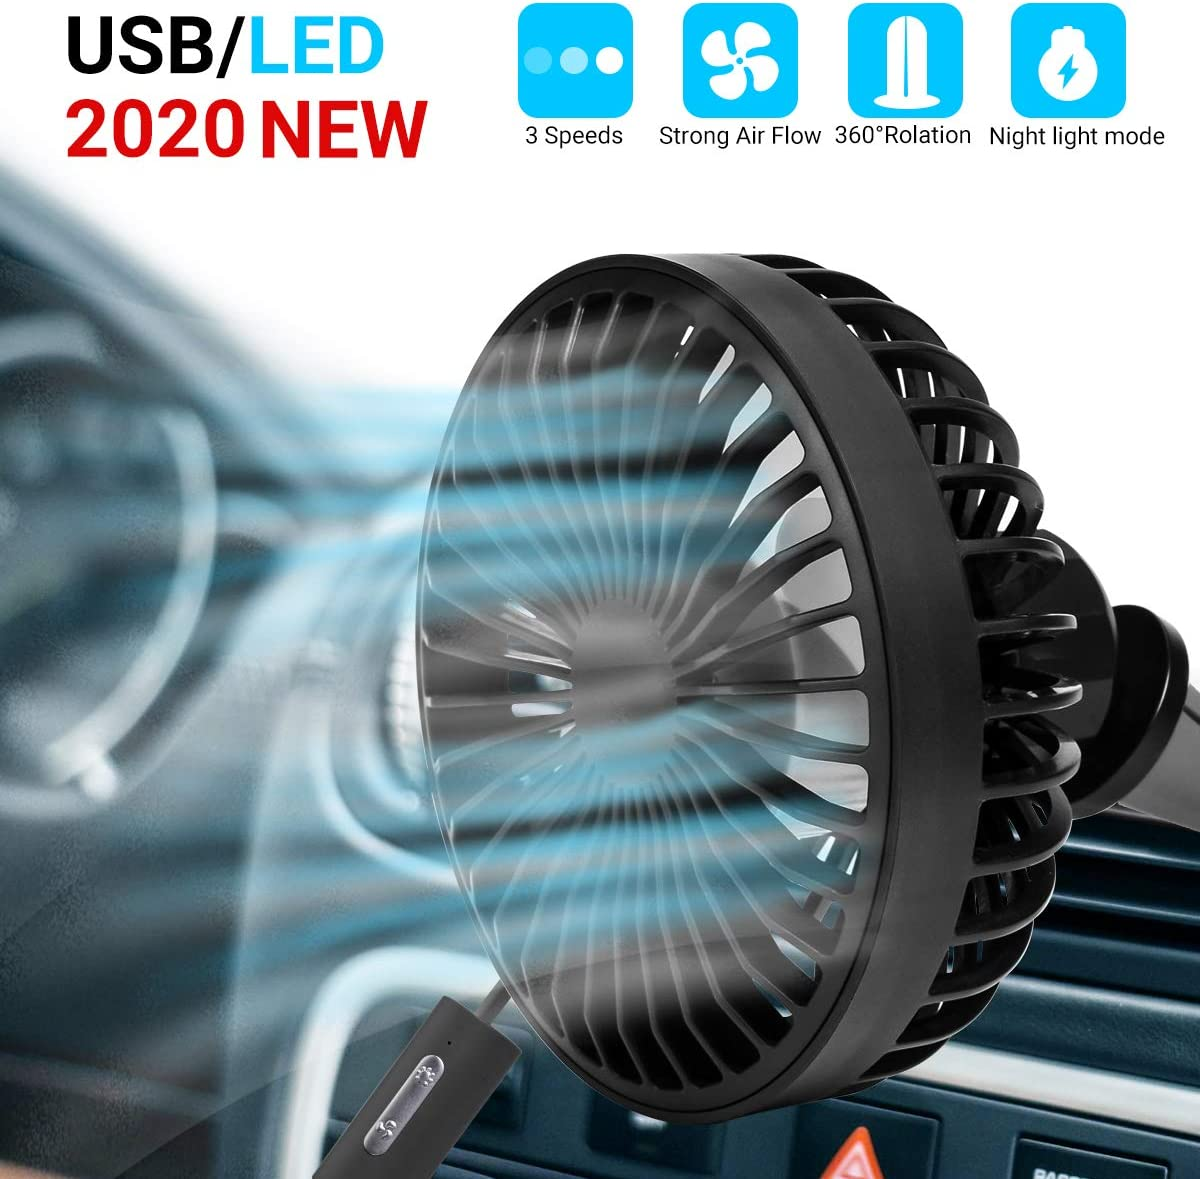 Car Cooling Fan, USB Mini Car Fan, Adjustable 3-Speed with Night Light Mode, for Car A/C Vent Home Office (Black)